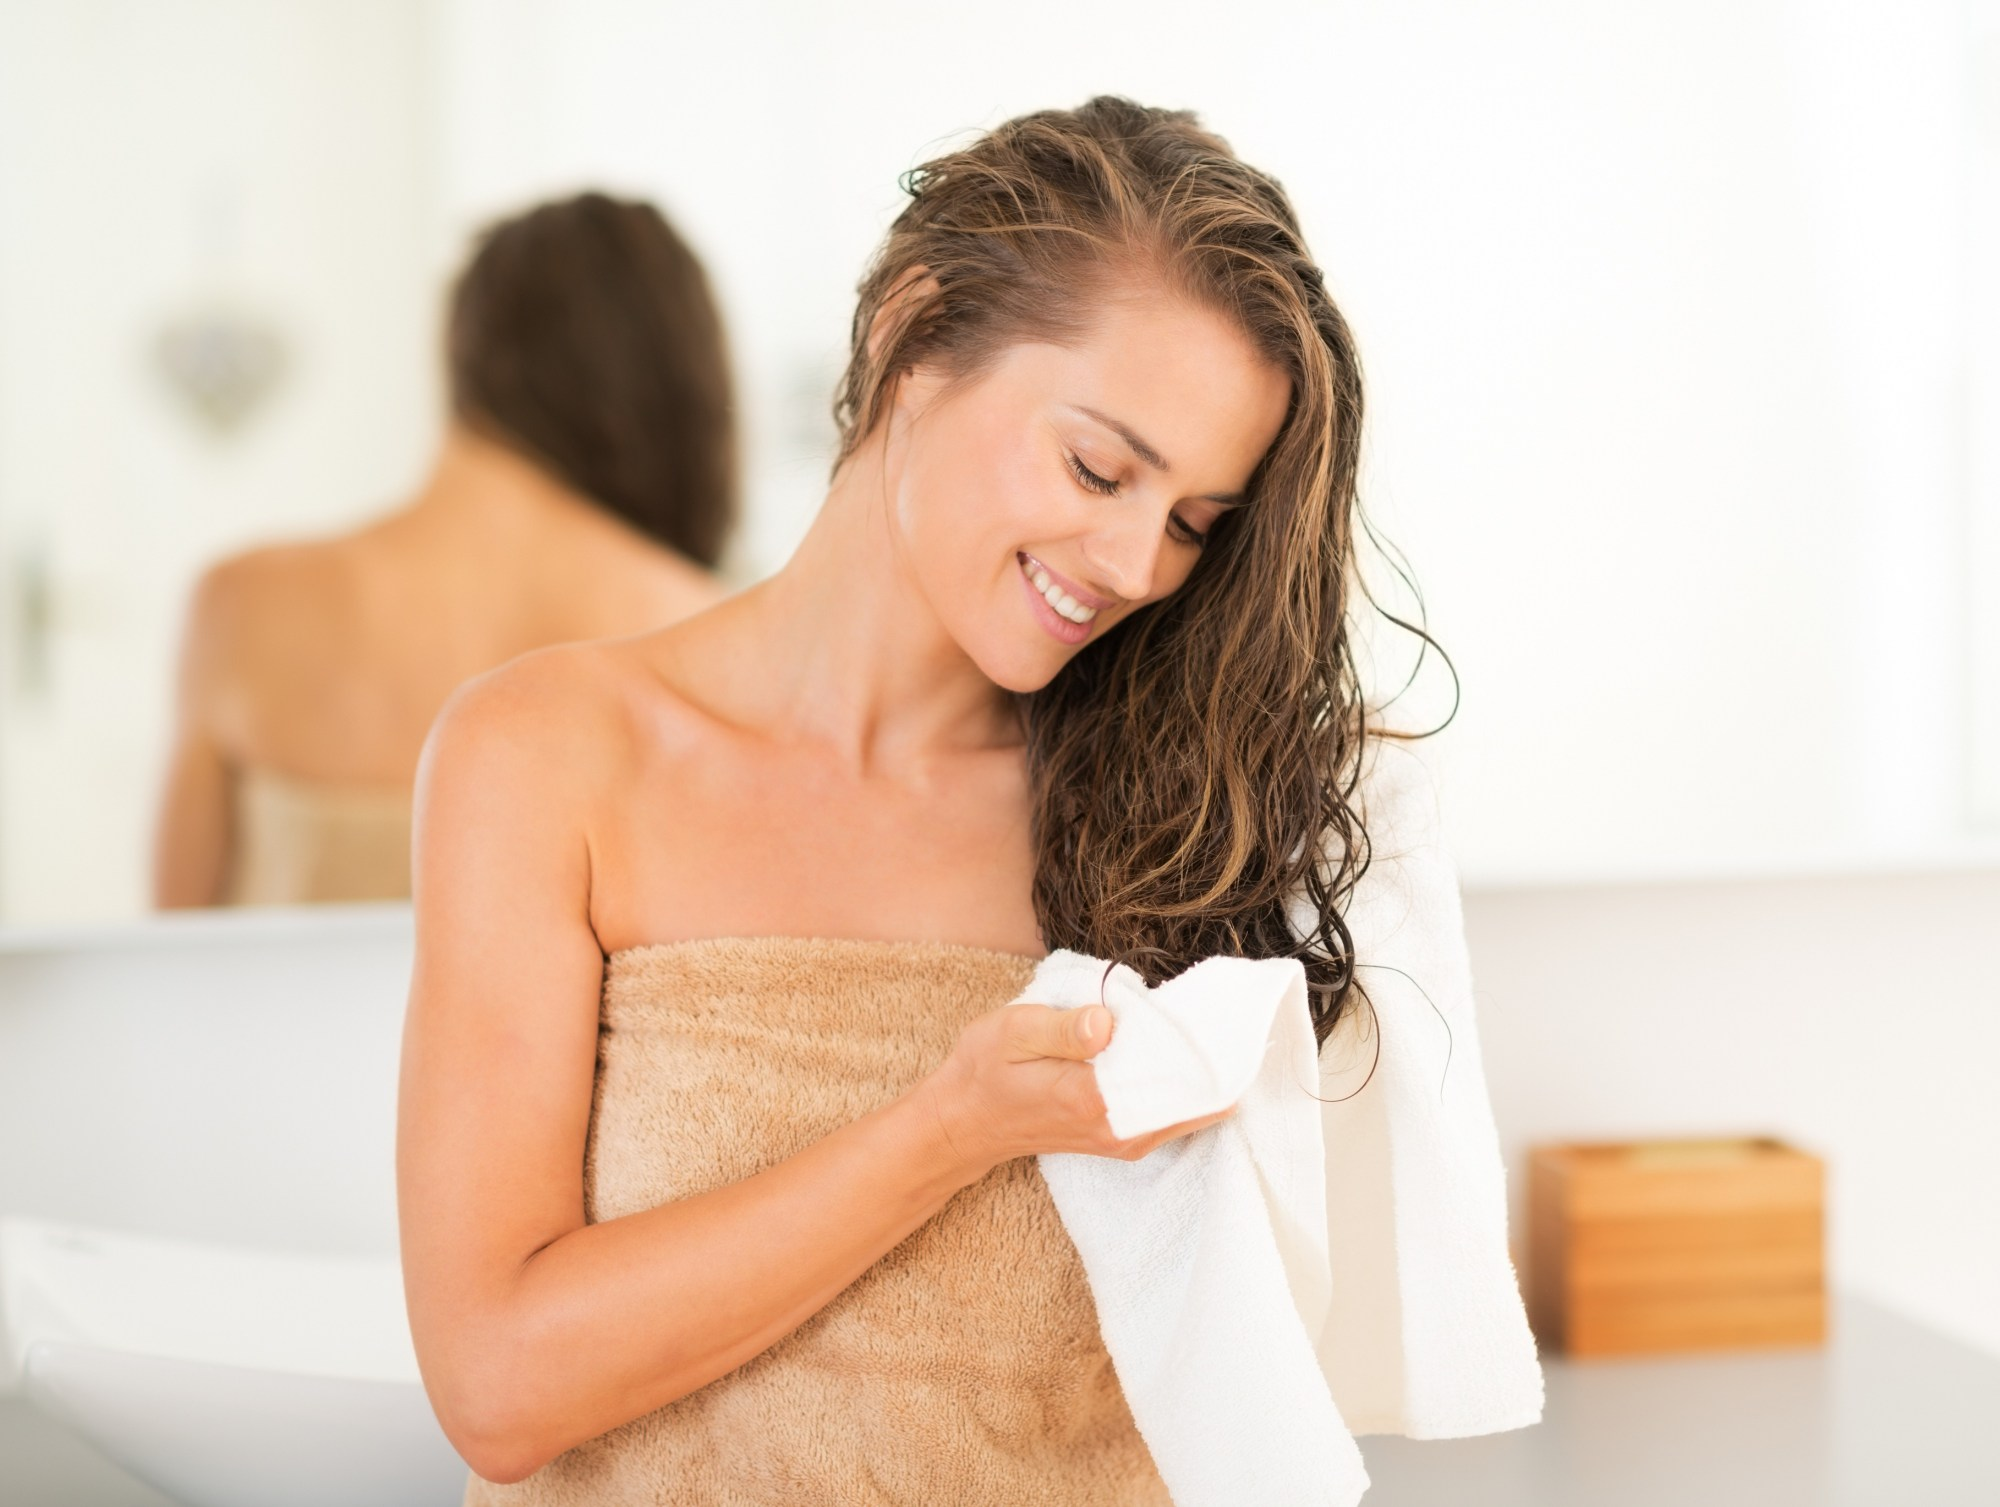 Woman after bath taking care of her hair with a white towel